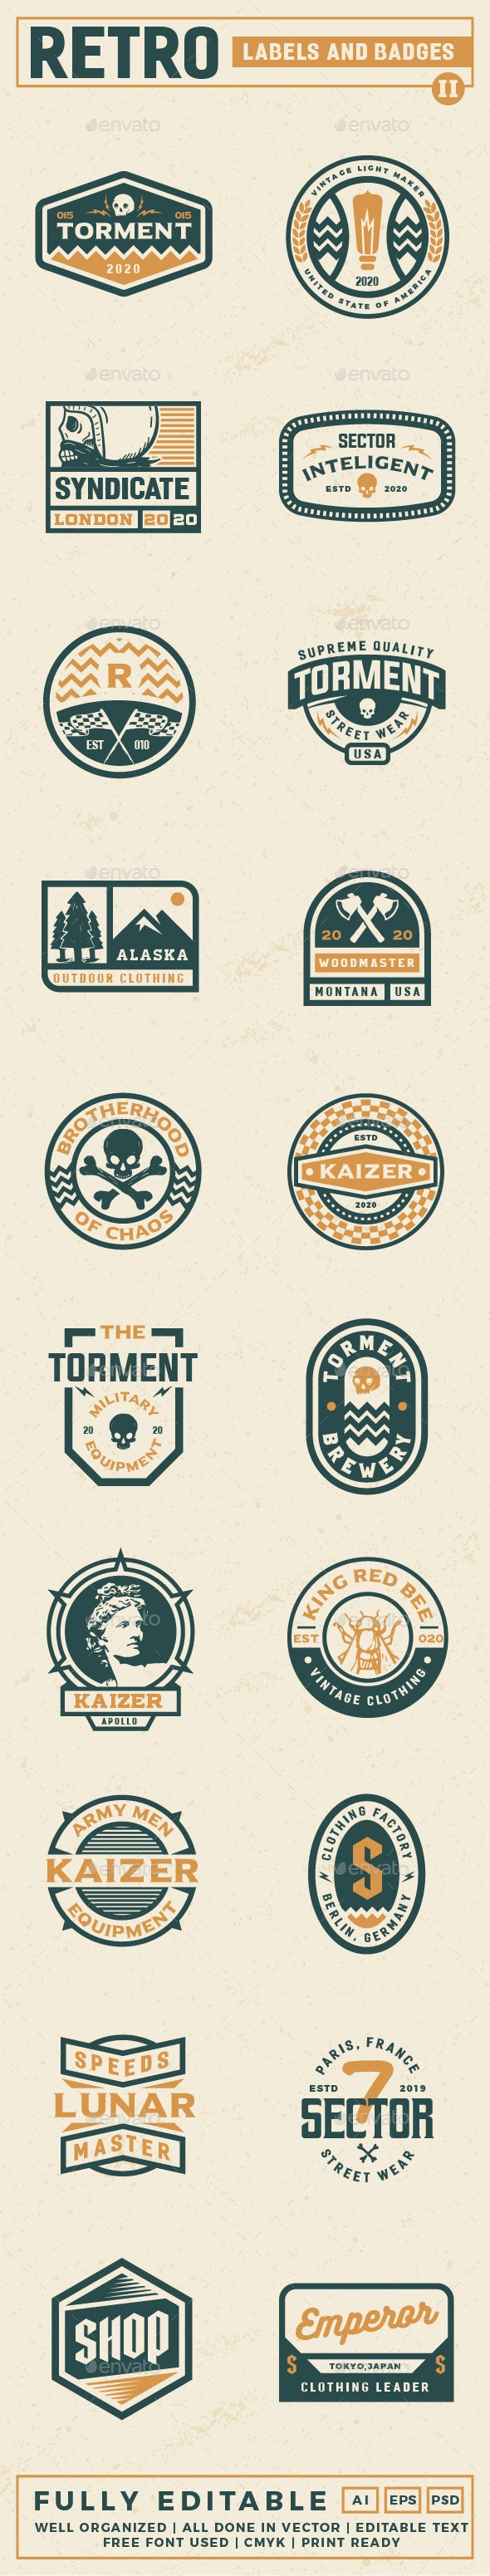 Retro Label and Badges Vol 2 - Badges & Stickers Web Elements